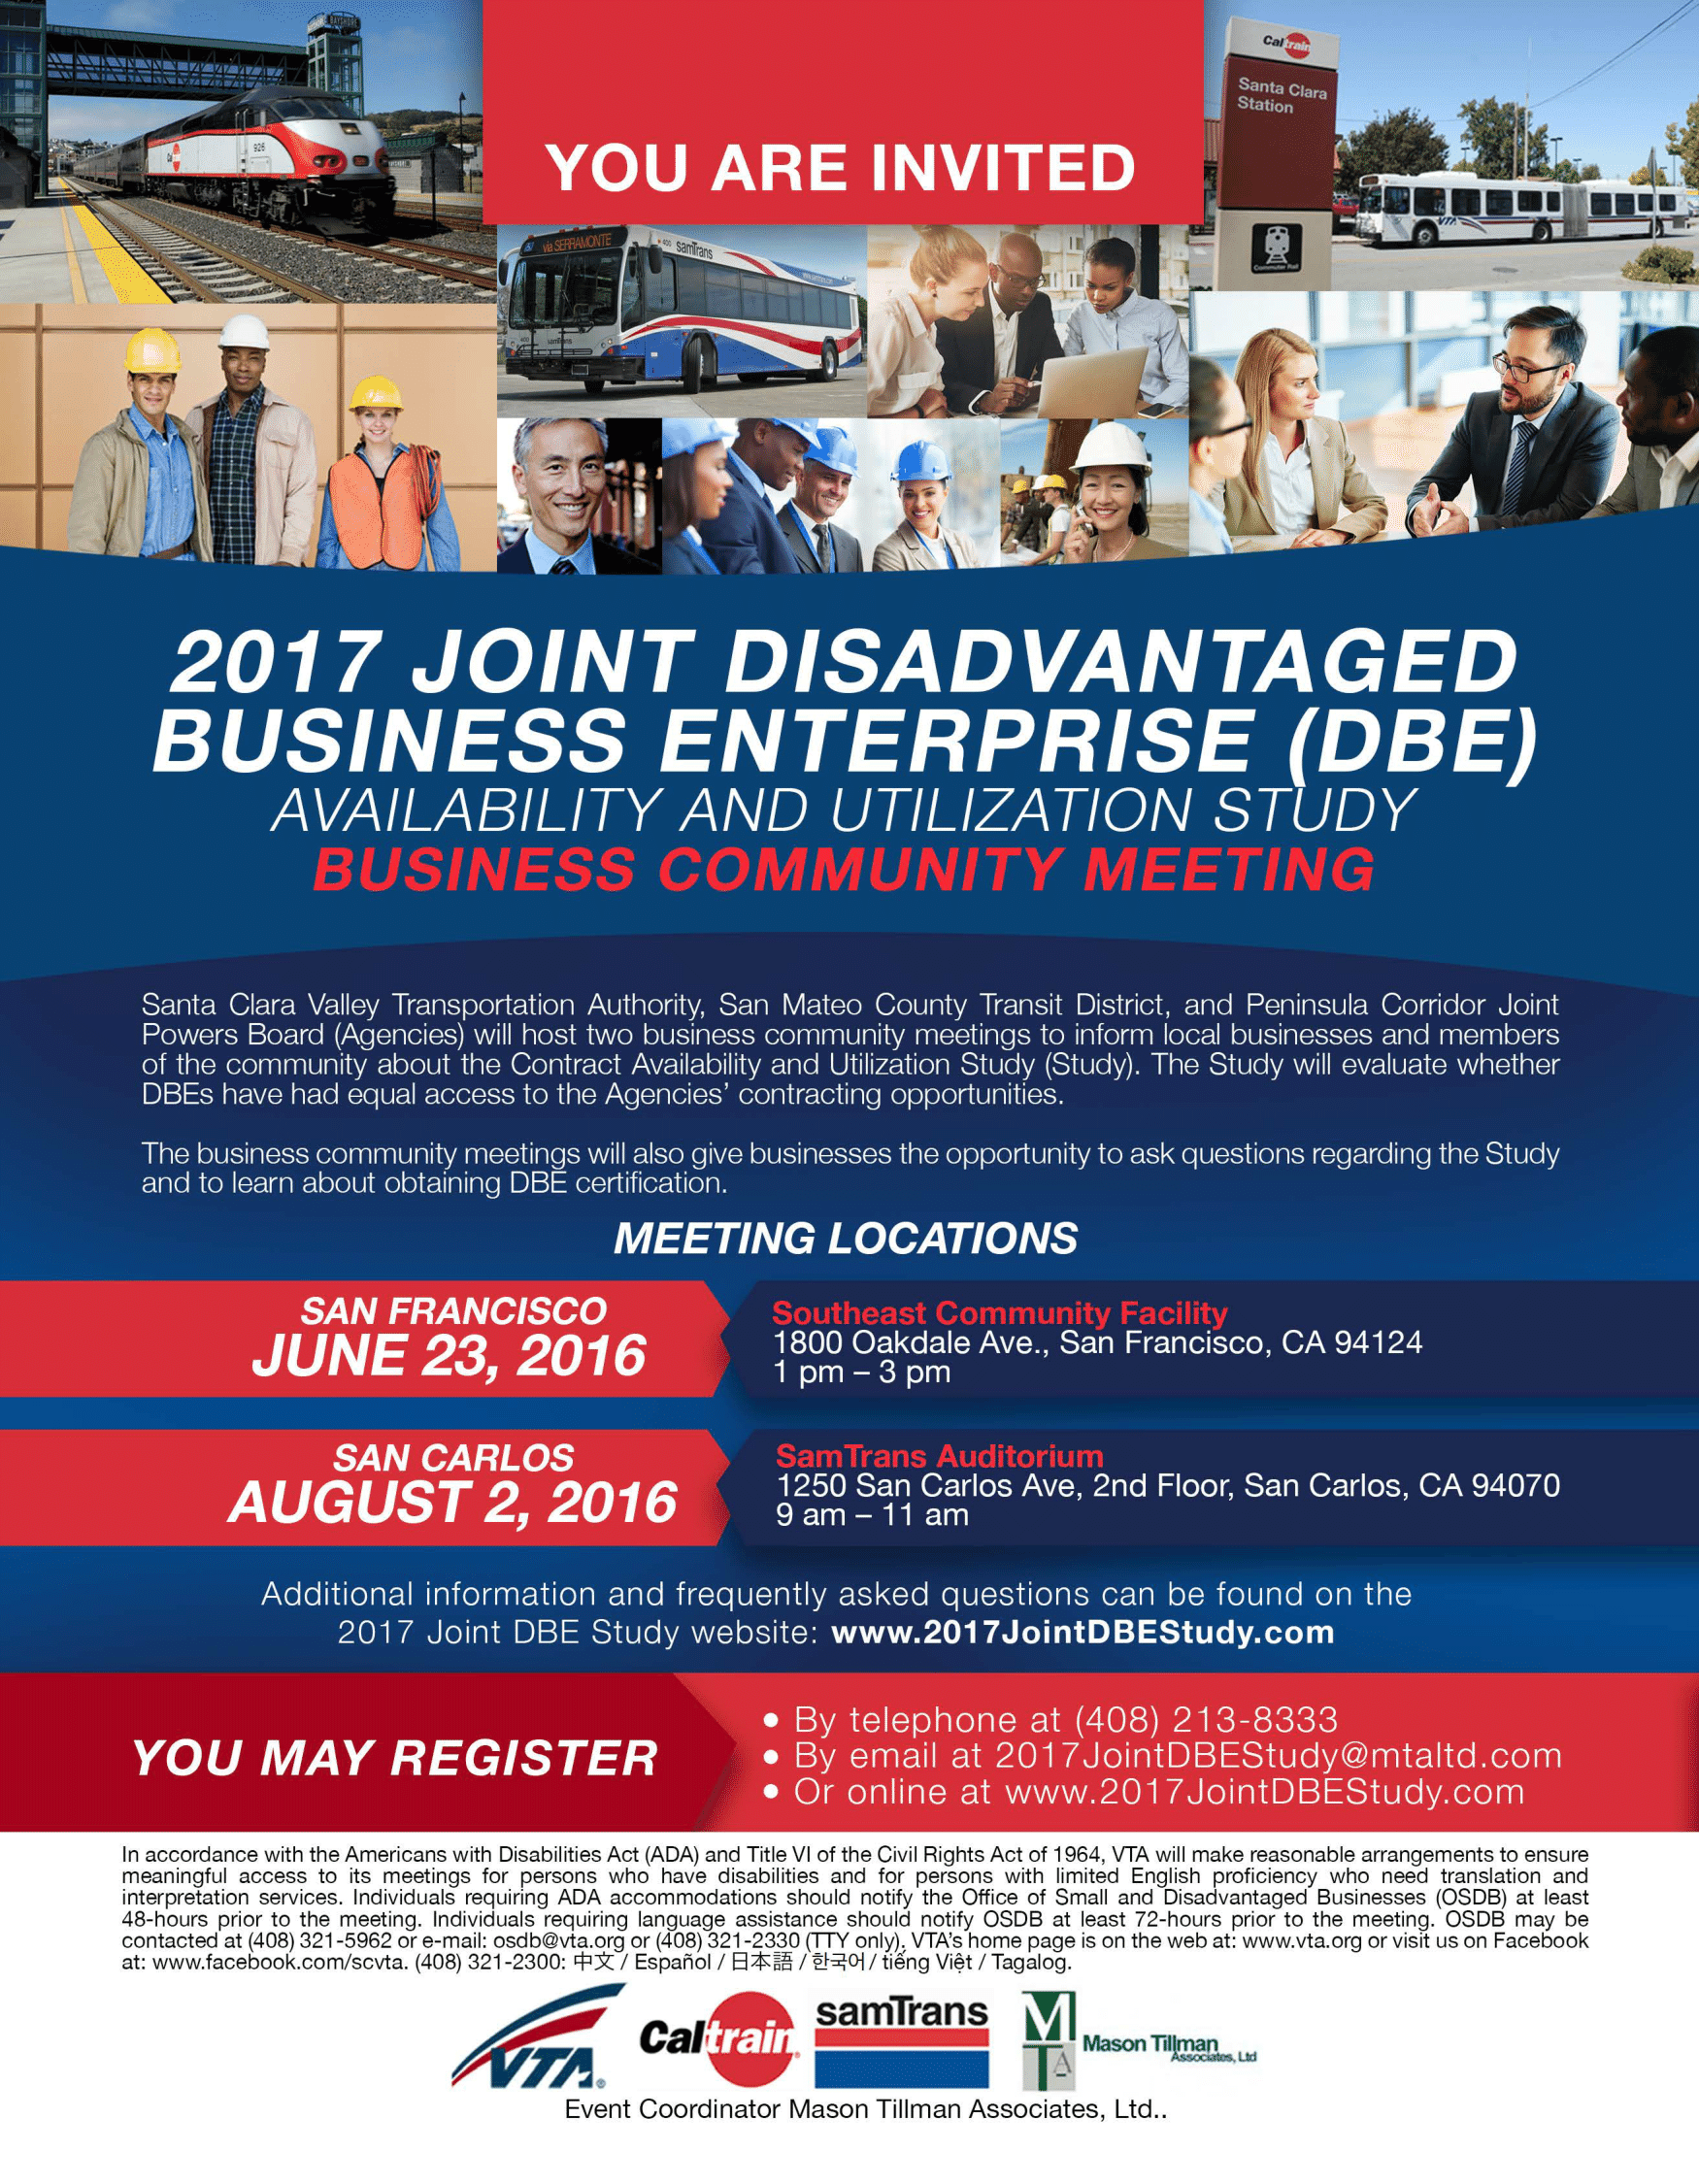 a dbe business community meeting will be held in san carlos next month